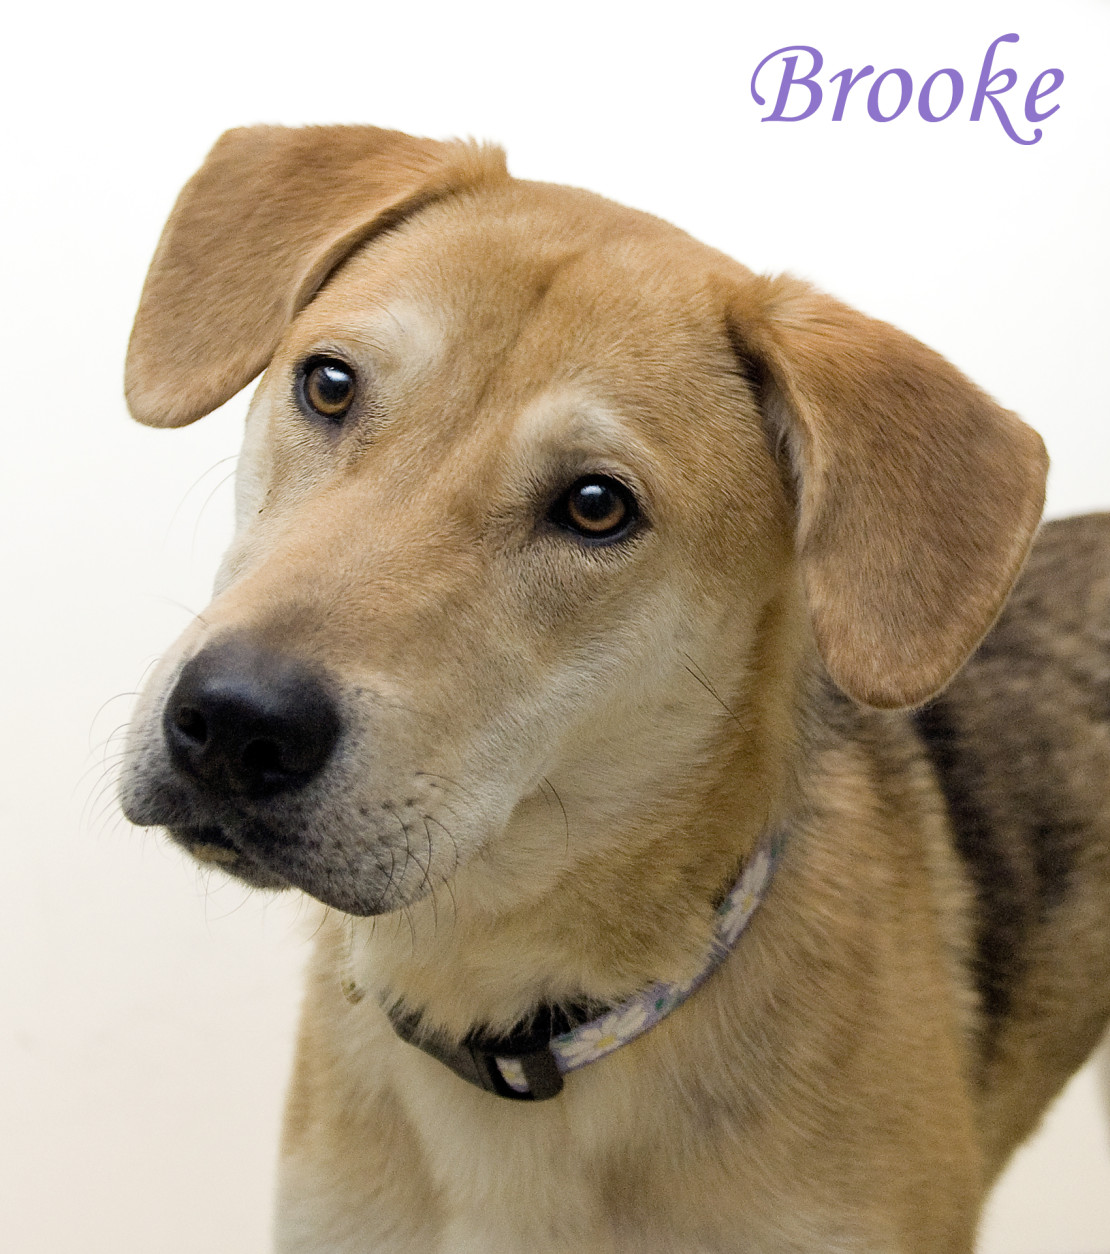 Pet of the Week: Brooke  For the week of April 25  Just one look at Brooke's sweet expression and you'll fall for this one-year-old Shepherd/retriever mix! And she's more than just a pretty face: This energetic girl has a zest for life that's contagious. Although her physical activities are being restricted at the moment as she undergoes treatment for heartworm, she's looking forward to the day when she can play and run around a large yard to her heart's content. Like most athletic types, Brooke also enjoys her downtime, preferably near -- or on -- her person. She'll push her head into your hands to encourage neck and ear scratching and will return the favor with a gentle lick. Given her exuberant personality, Brooke would be too much for young children but would love a family with adults, teenagers, and perhaps a canine companion. Could that be yours? Stop by the Oglethorpe Adoption Center of the Washington Humane Society/Washington Animal Rescue League today to meet Brooke and find out. The center is at 71 Oglethorpe St. in Northwest D.C.  Photo:  Washington Humane Society/Washington Animal Rescue League